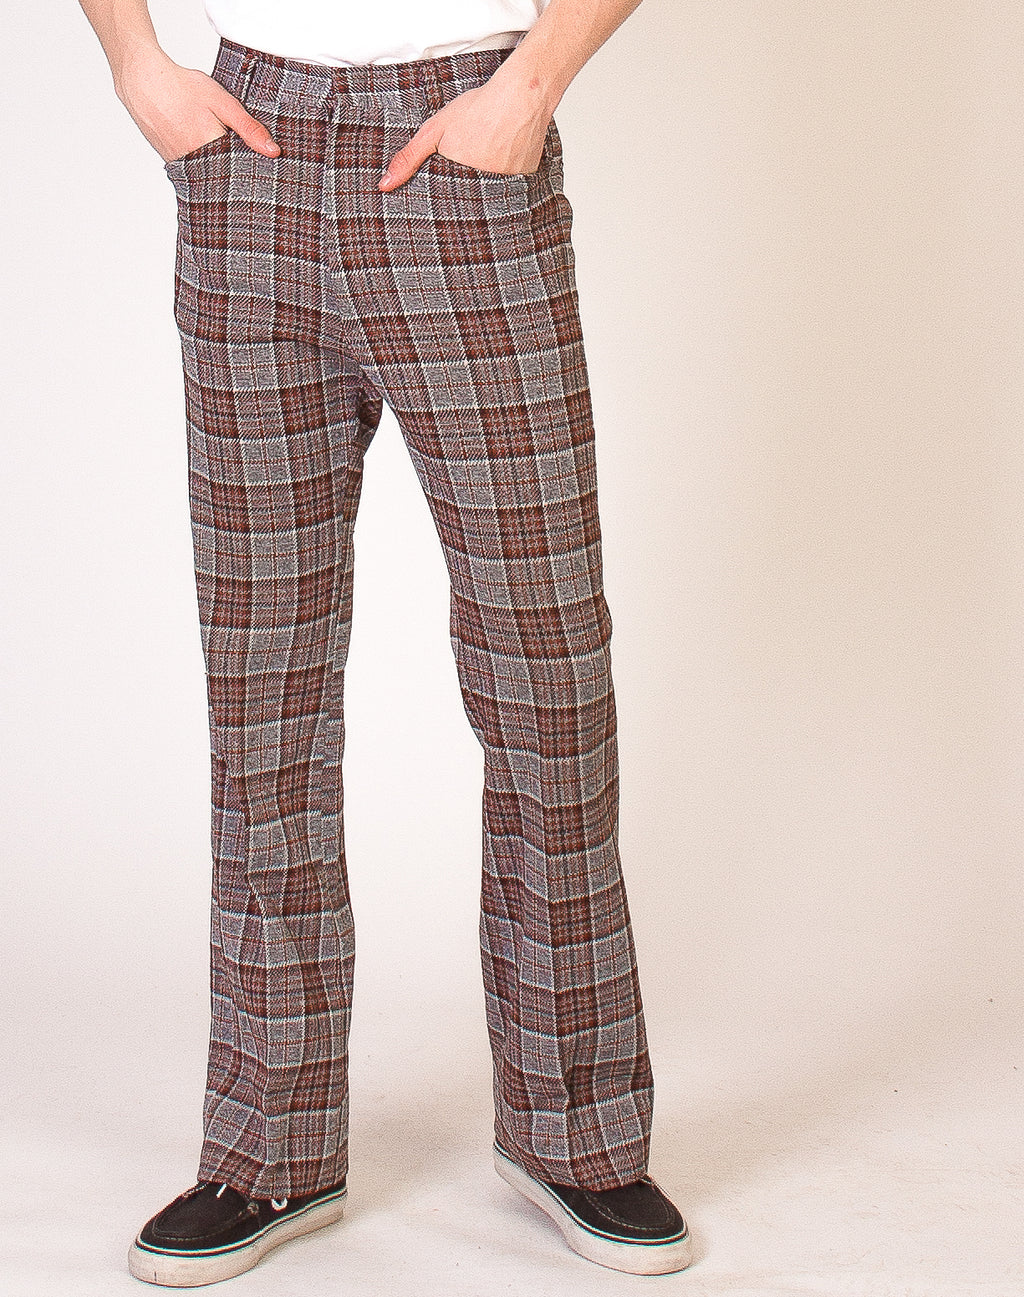 GREY AND RUST 70'S TROUSERS